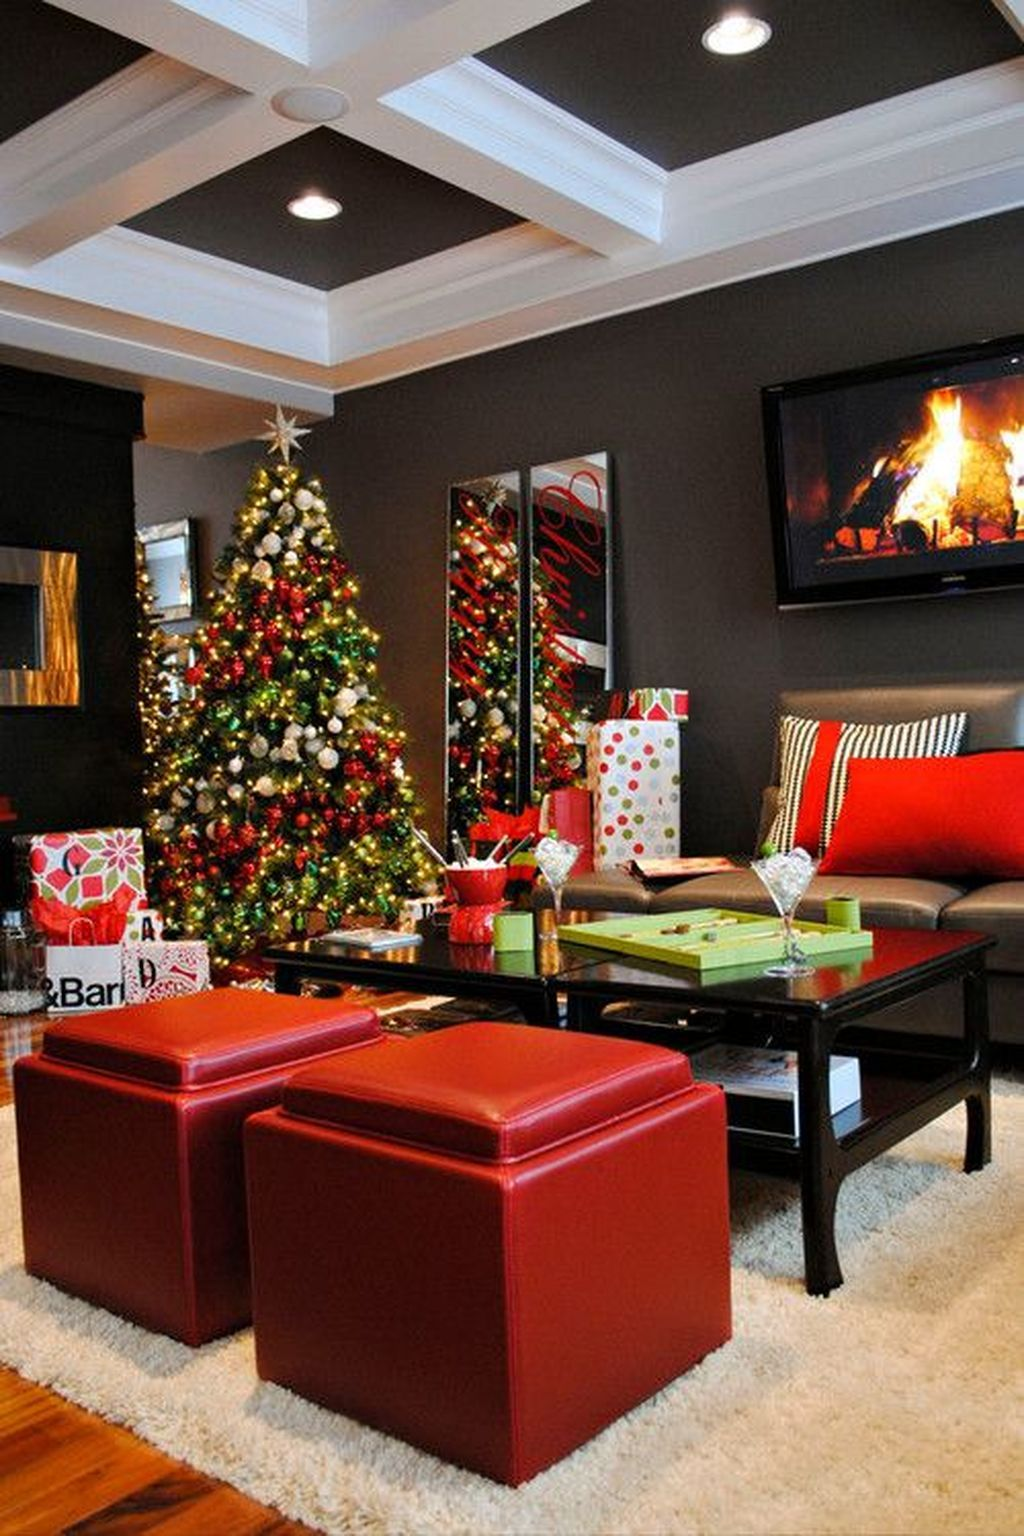 43 Amazing Decoration Your Small Space For Christmas